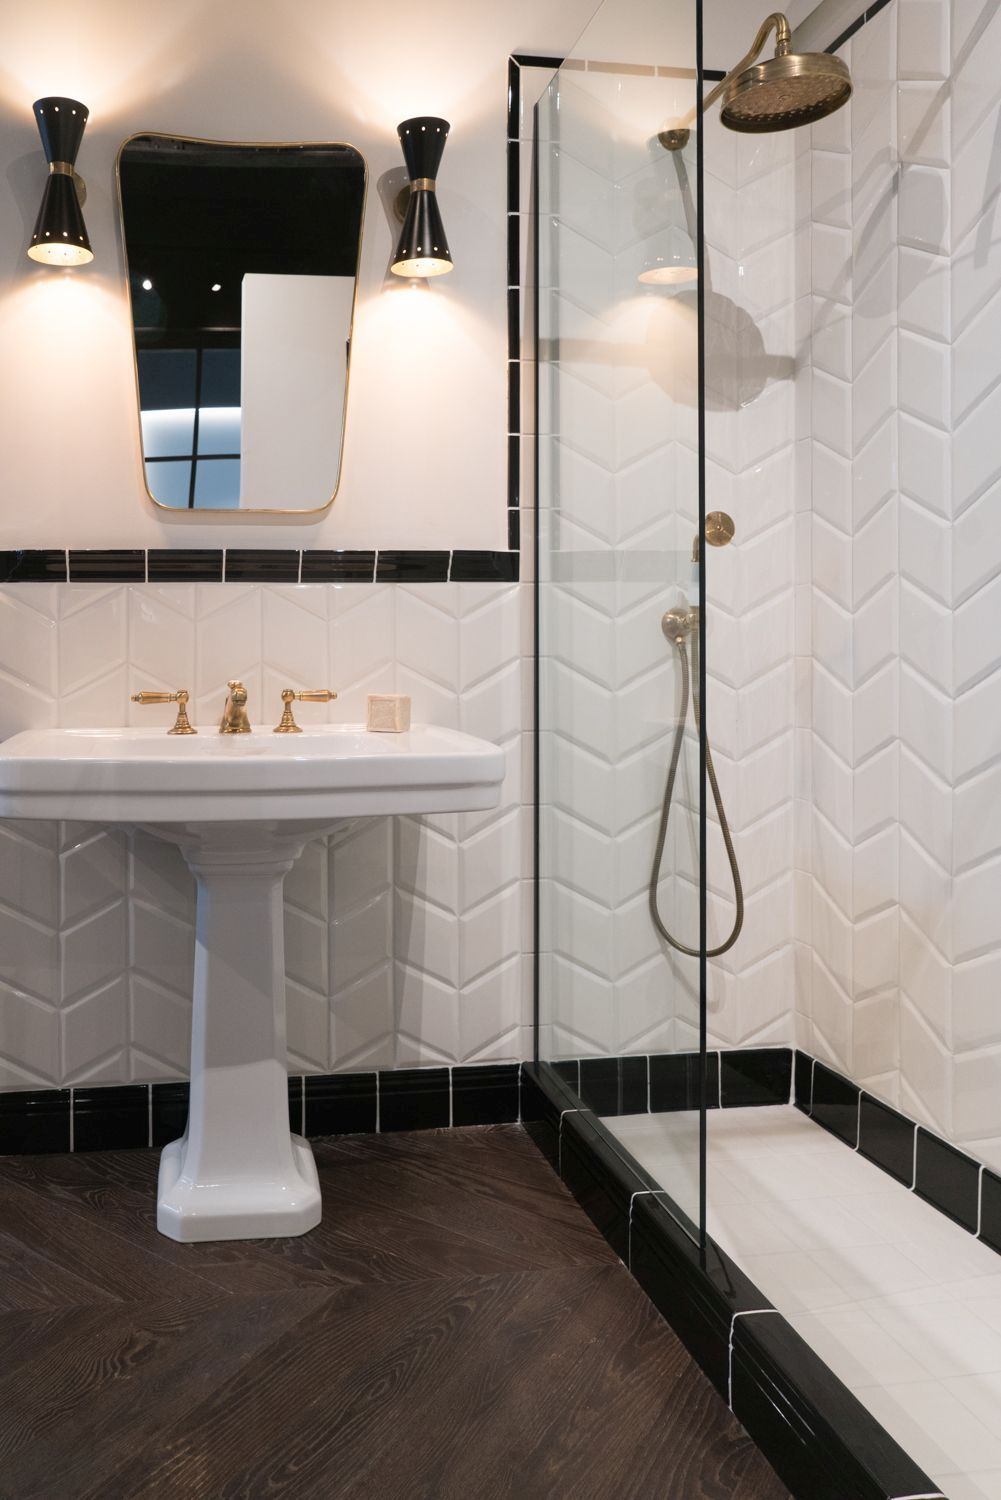 Ceramic tile is among the most affordable choices.